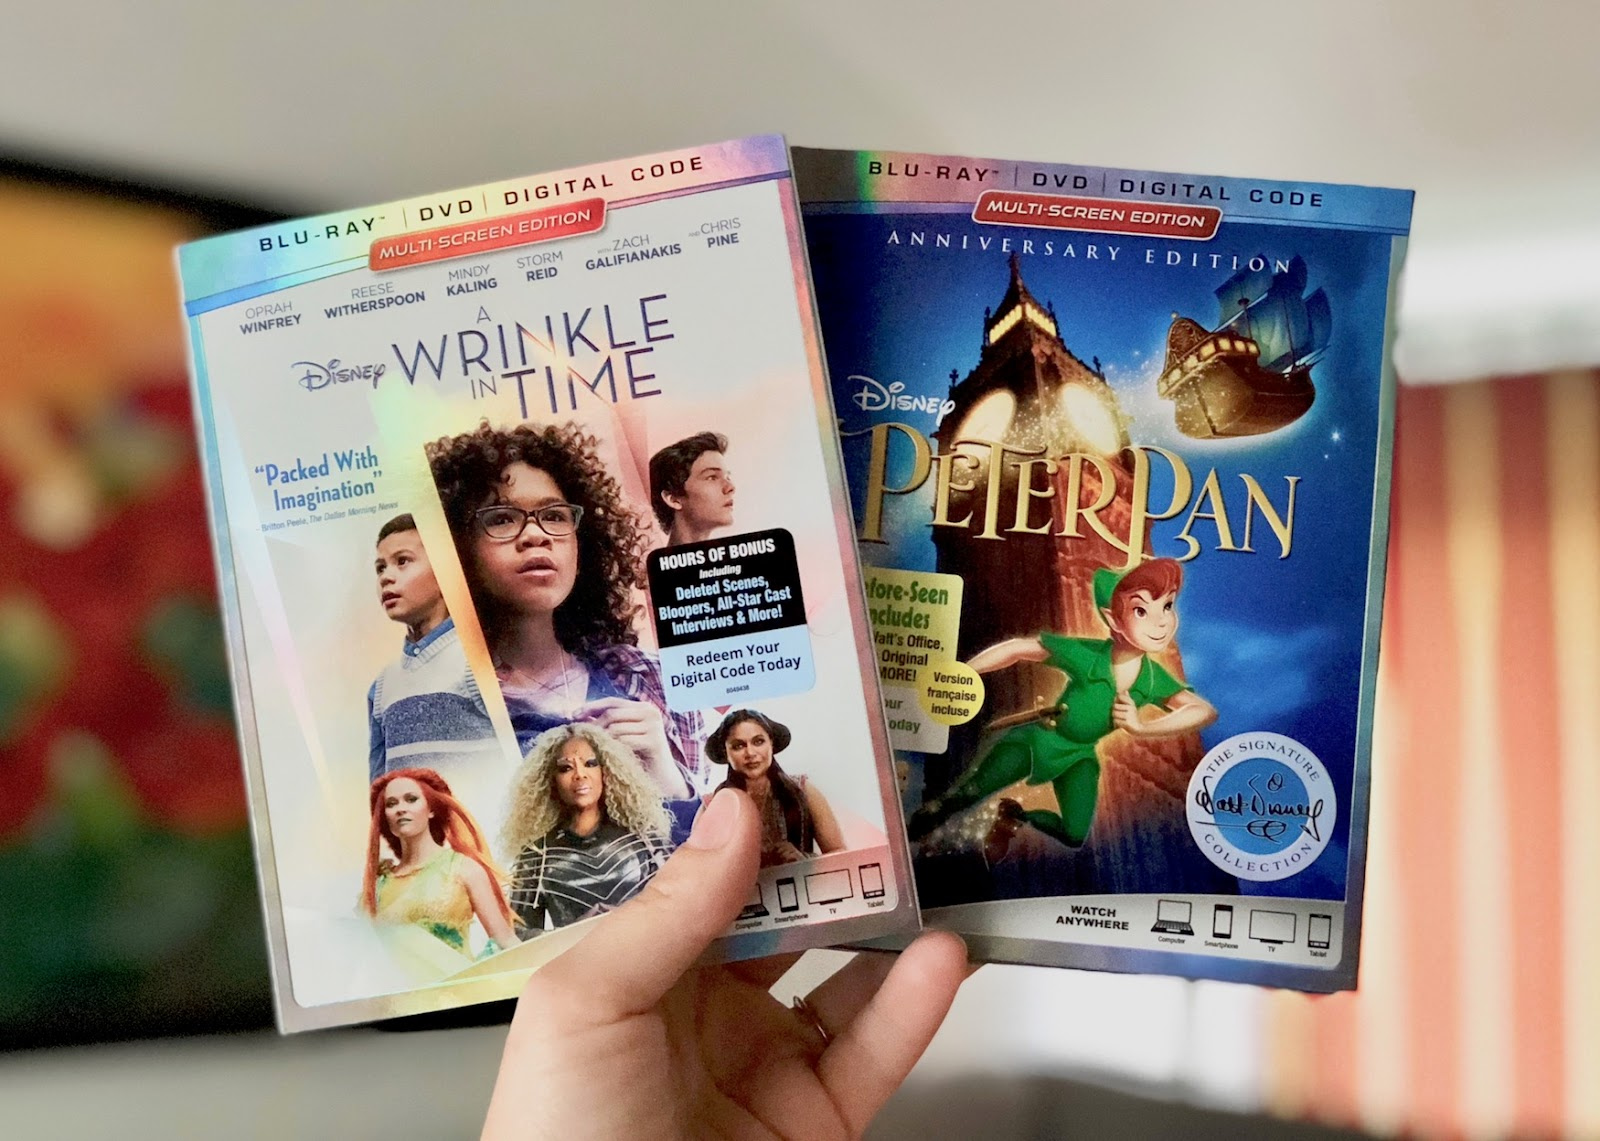 Win Blu-ray Copies of Disney's A Wrinkle in Time and Peter Pan